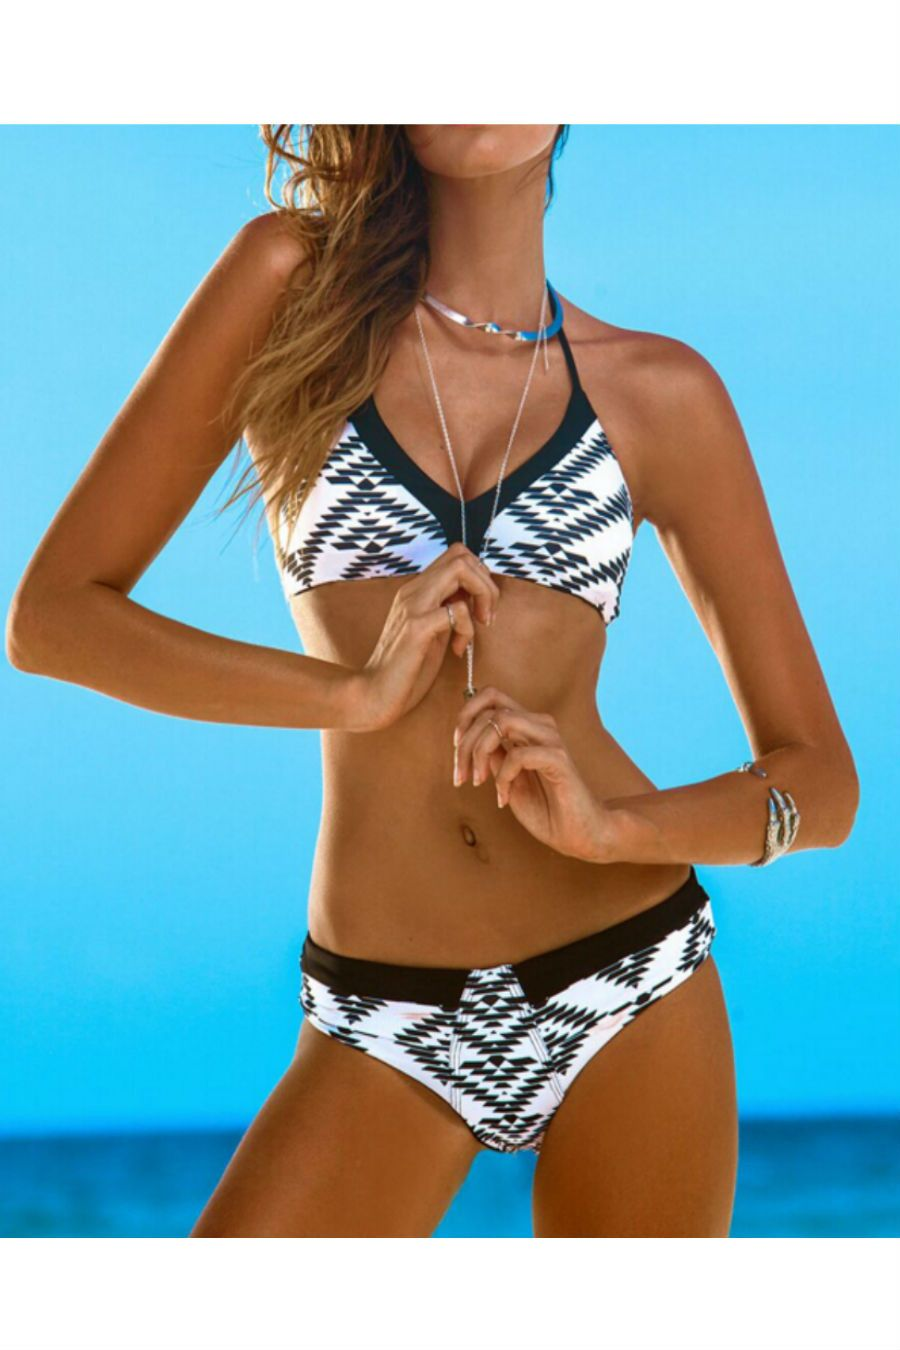 436e446bb721c Geo Printed Triangle Bathing Suit Lose Weight With More Energy  http://serenityspagifts.